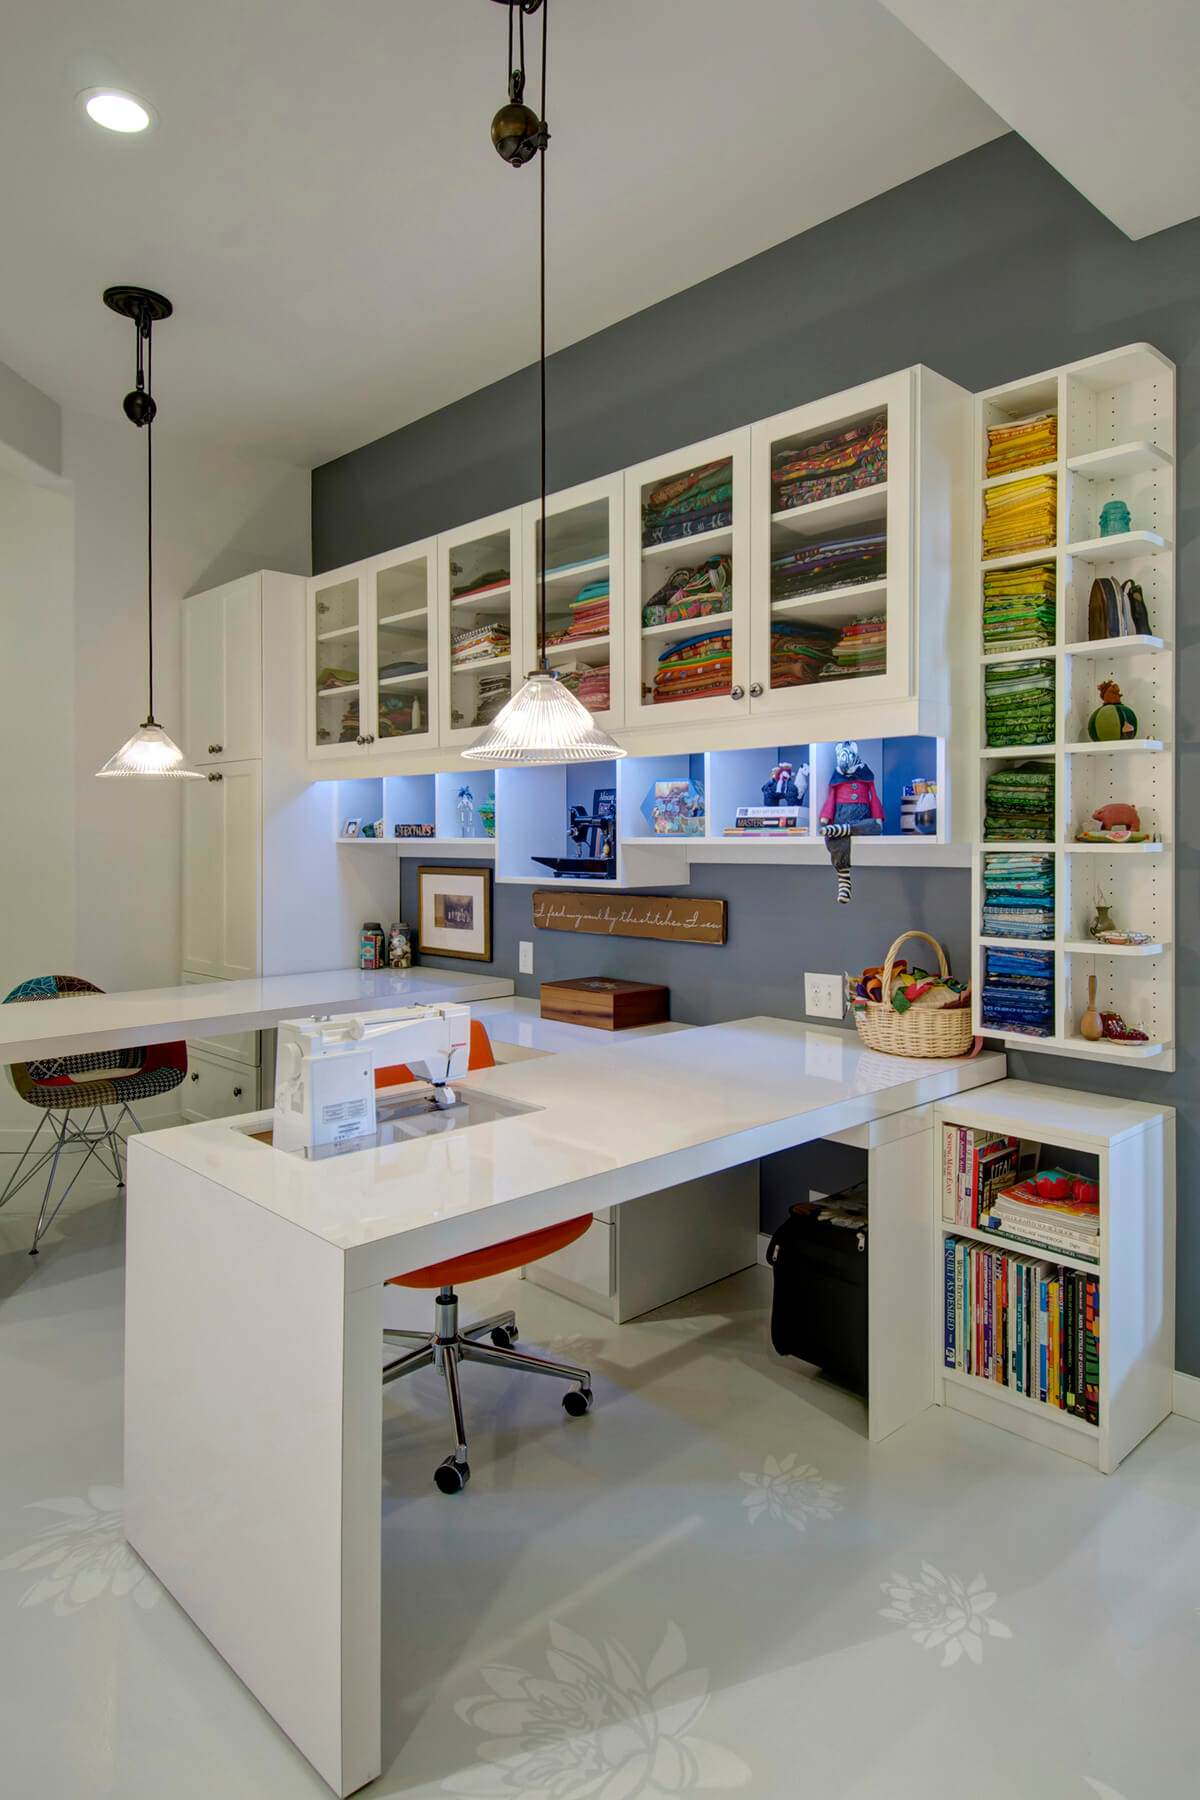 Pictures Of Craft Rooms 23 Craft Room Design Ideas Creative Rooms